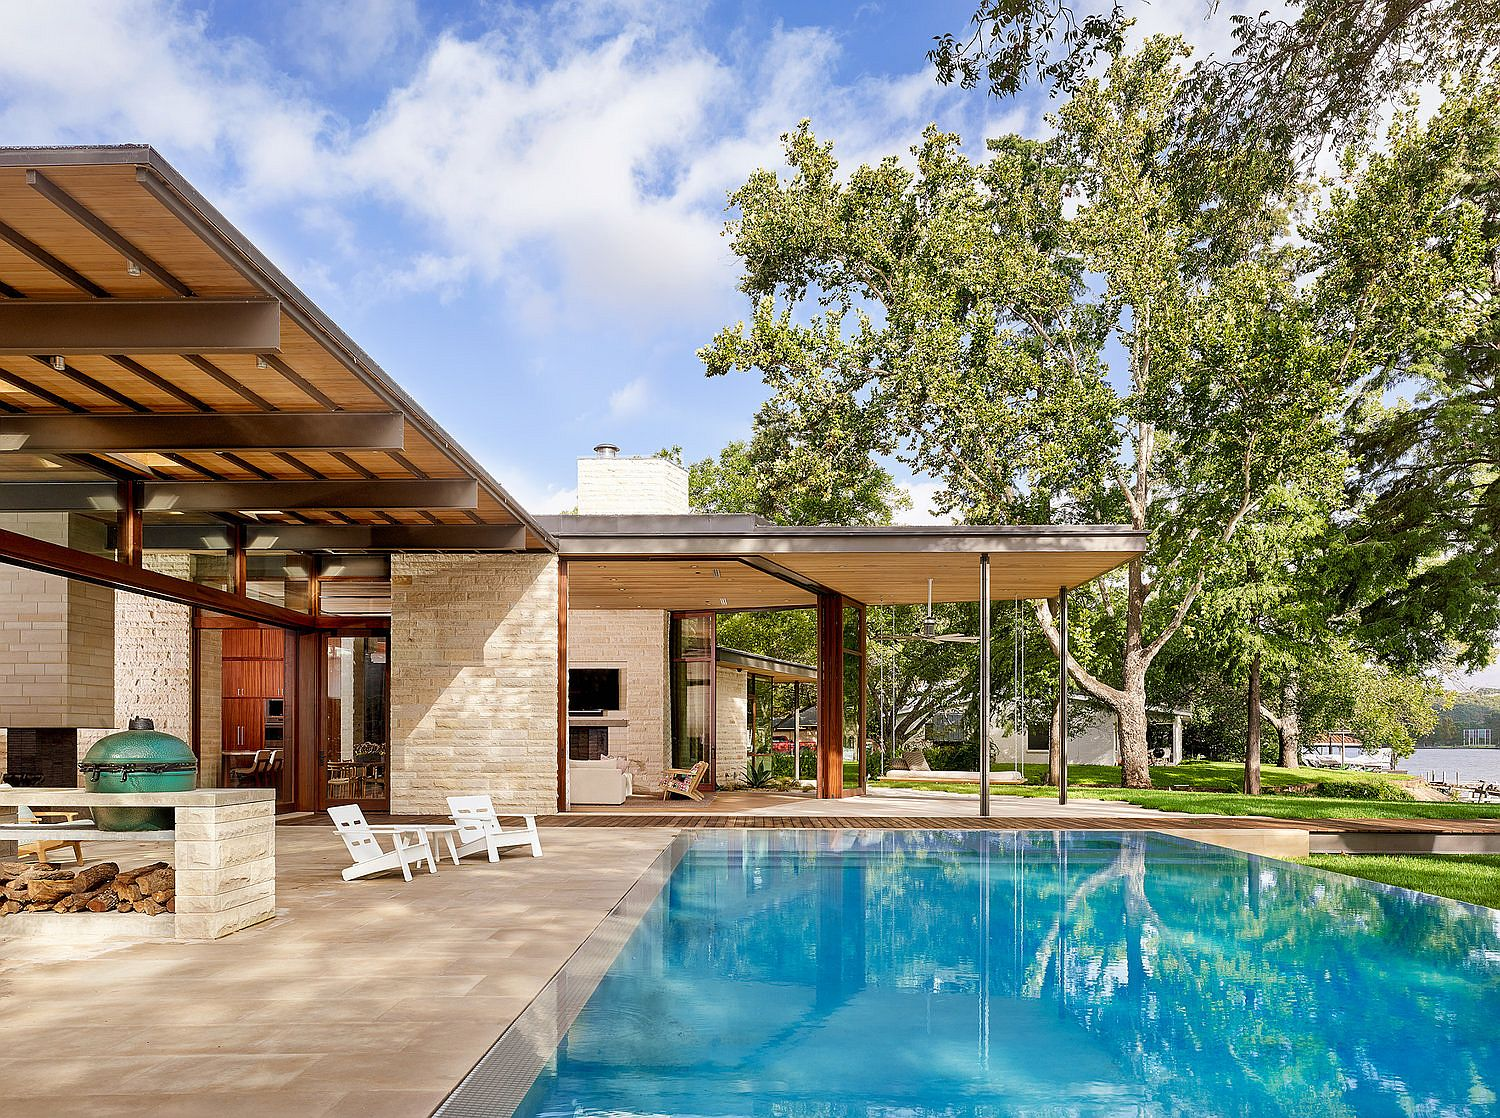 Deck and swimming pool area of the lavish lakeside Texas home